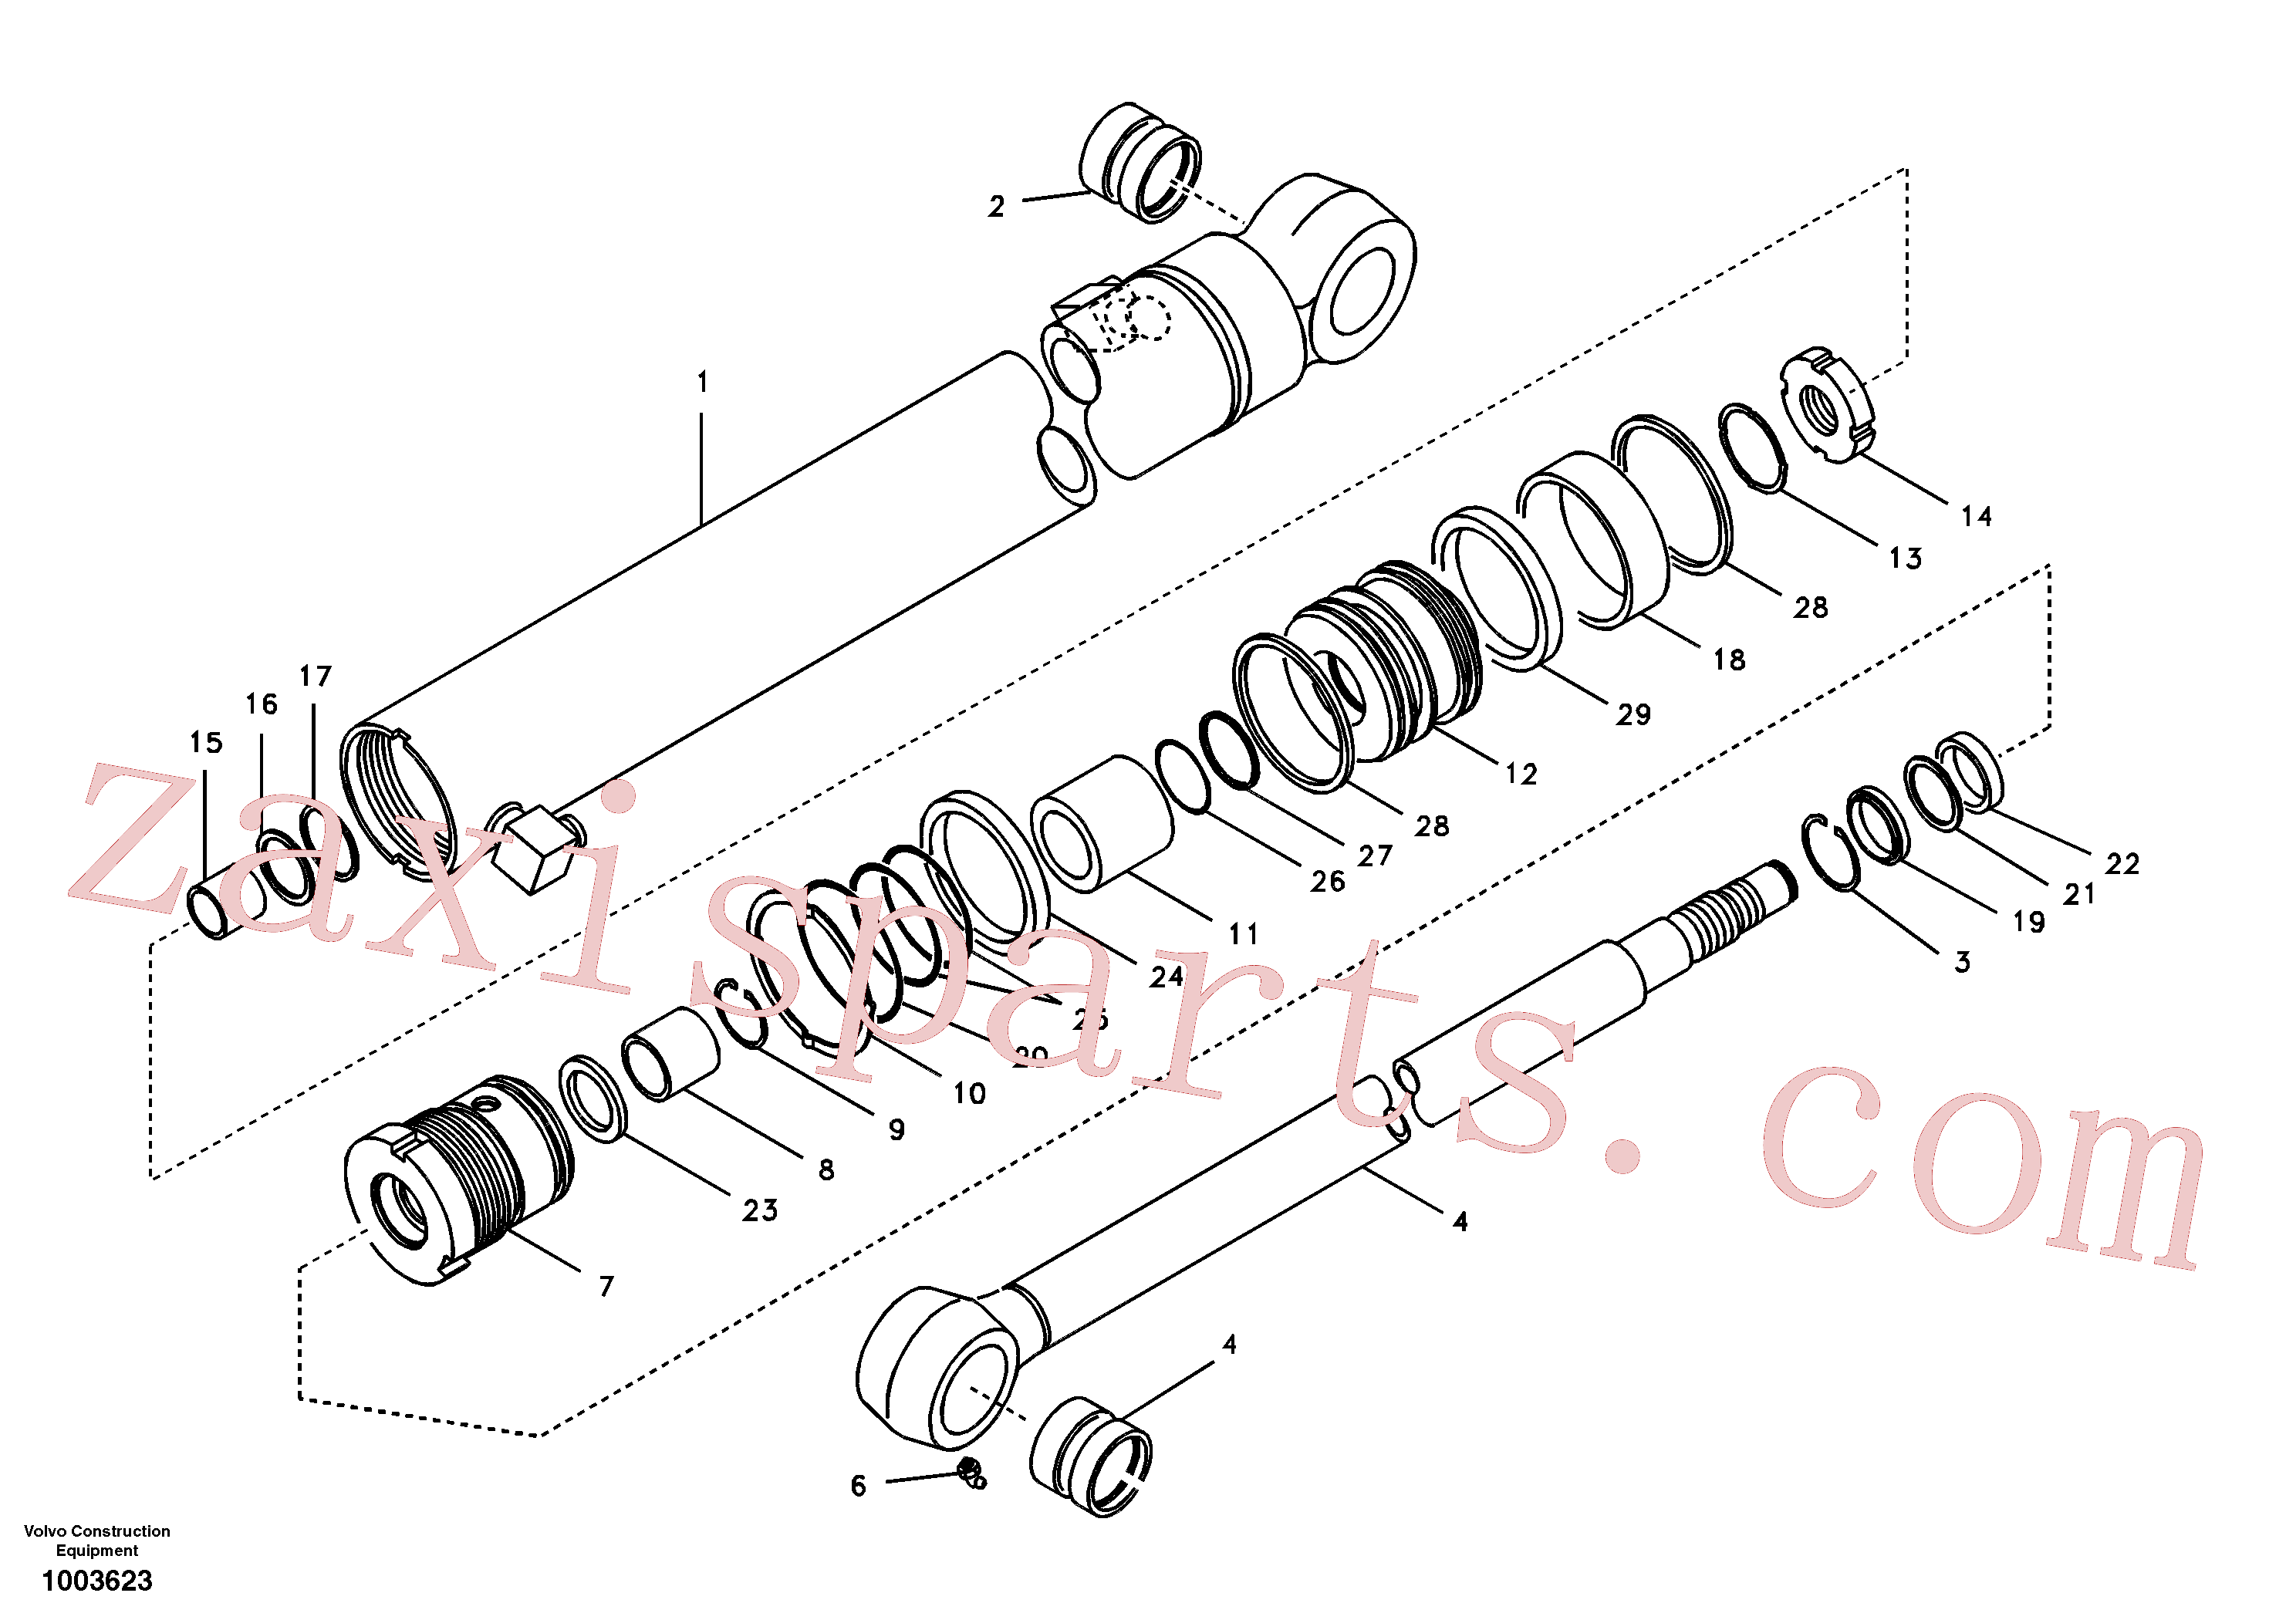 SA9564-20550 for Volvo Dipper arm cylinder(1003623 assembly)